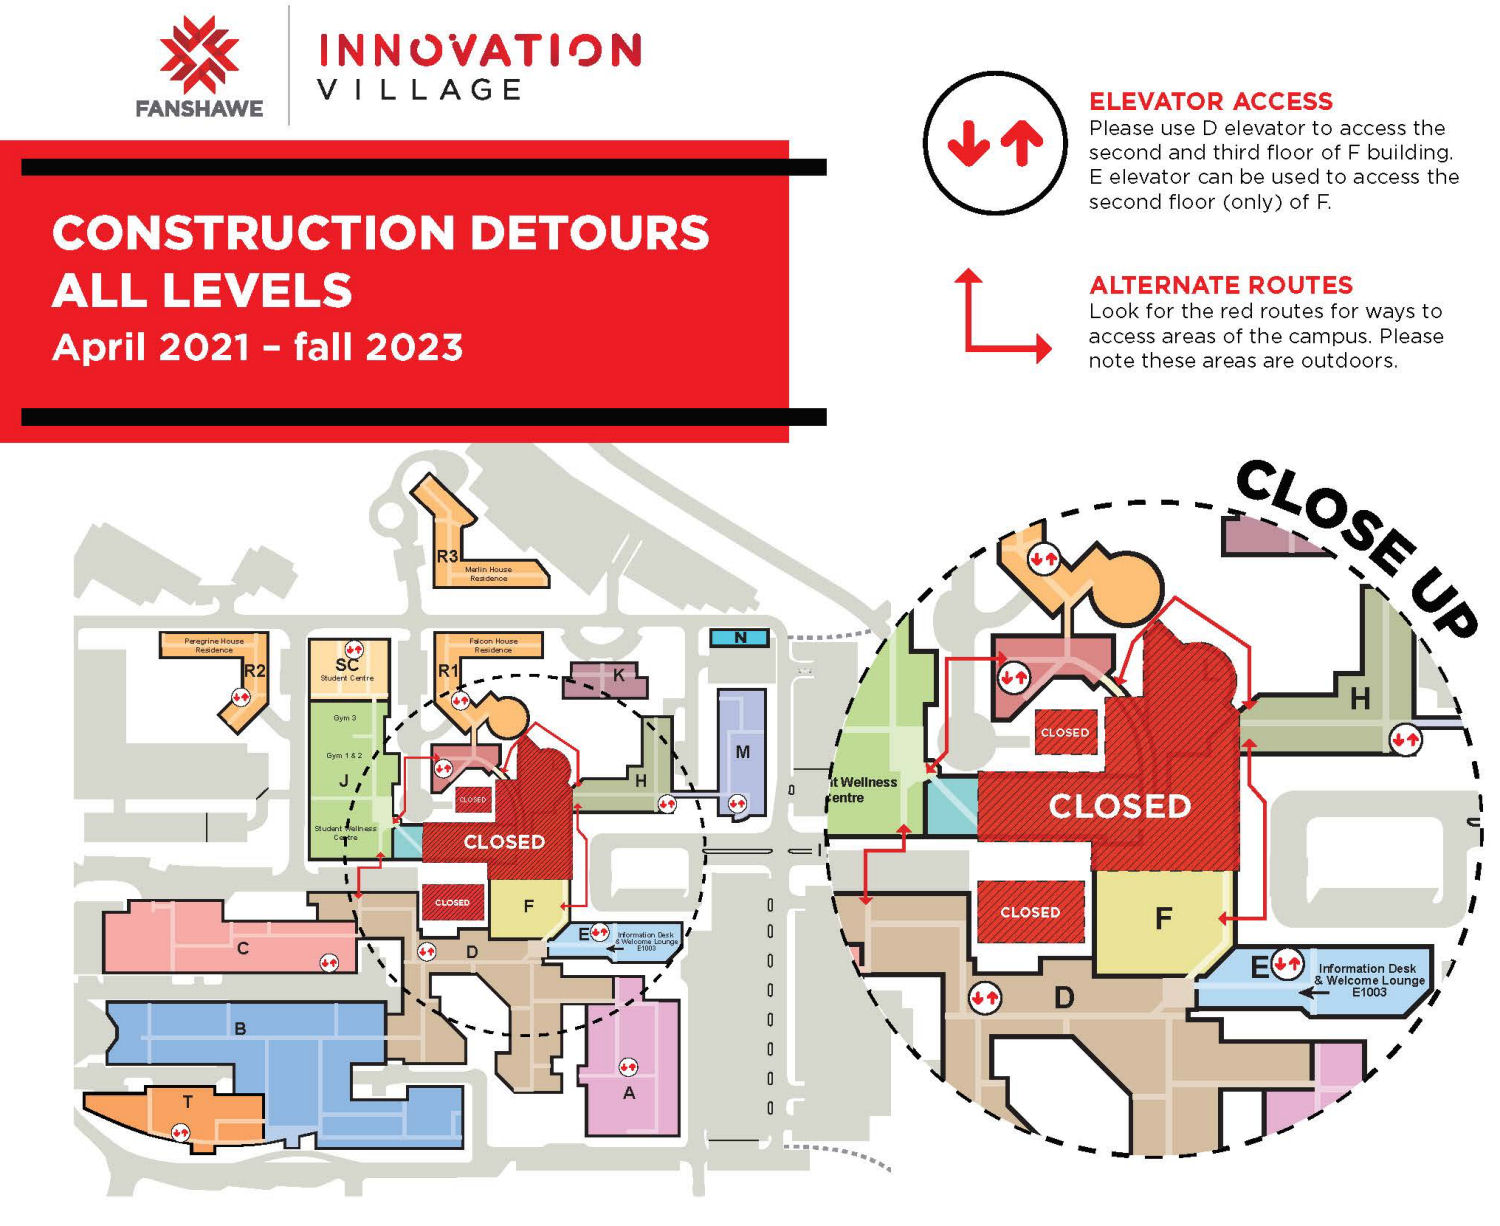 Construction detour map, all levels, March 2021 to Fall 2023. Elevator access: Please use D elevator to access the second and third floors of F building. E elevator can be used to access the second floor (only) of F. Alternate routes: Look for the red routes for ways to access areas of the campus. Please note these areas are outdoors.